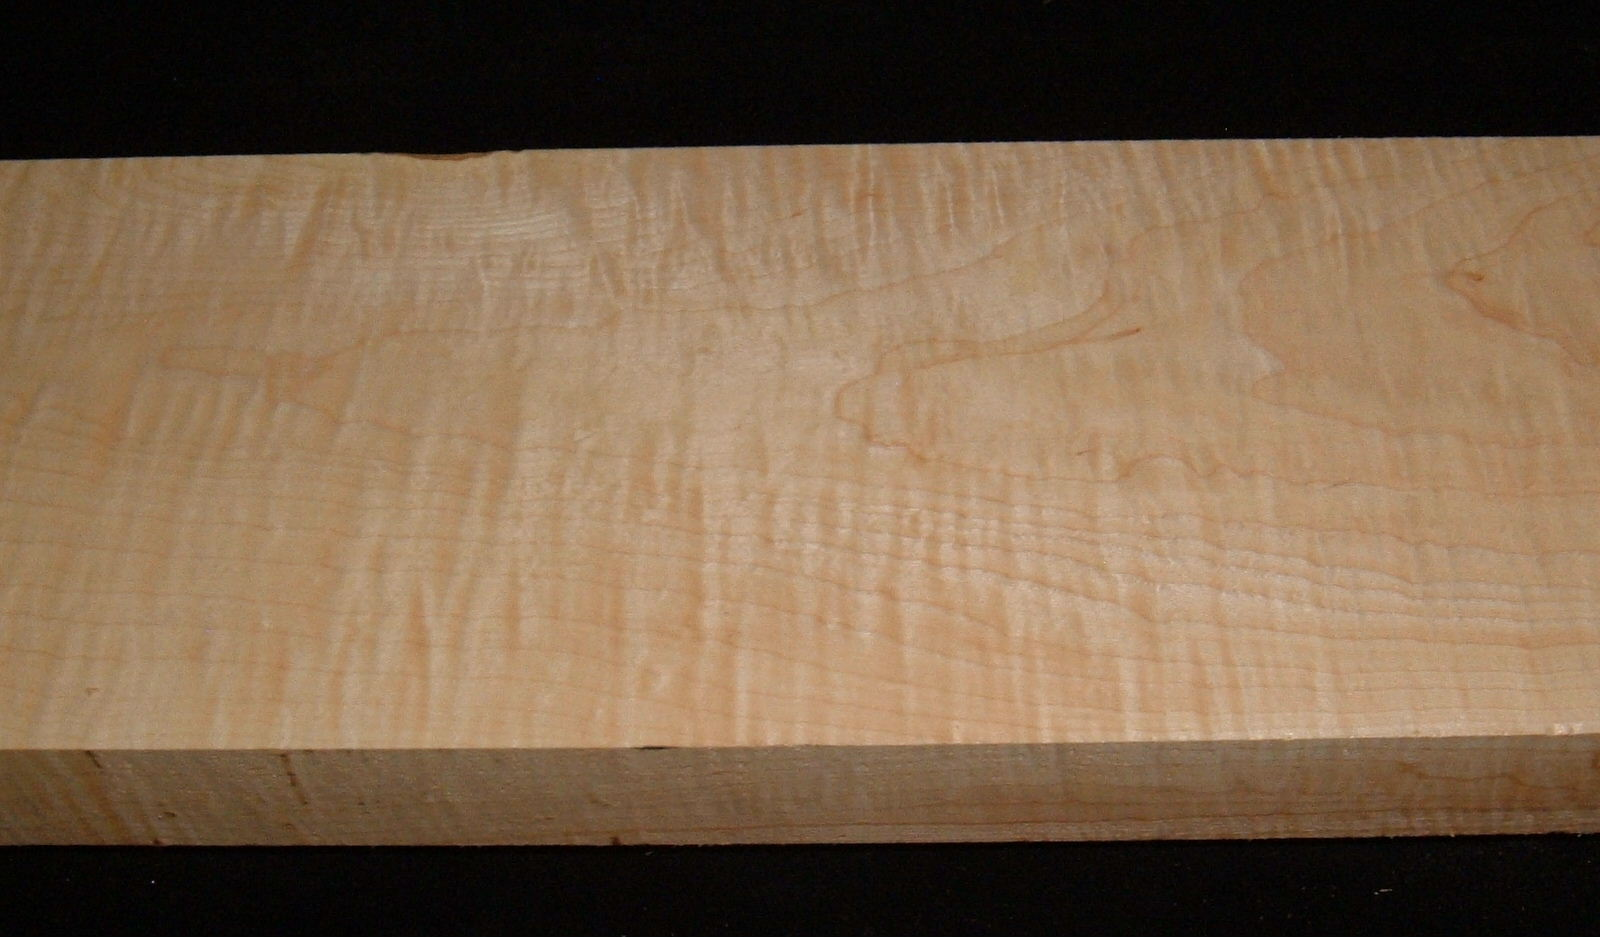 HMS-3147, 1-15/16x6-1/2x27, Curly Tiger Hard Maple